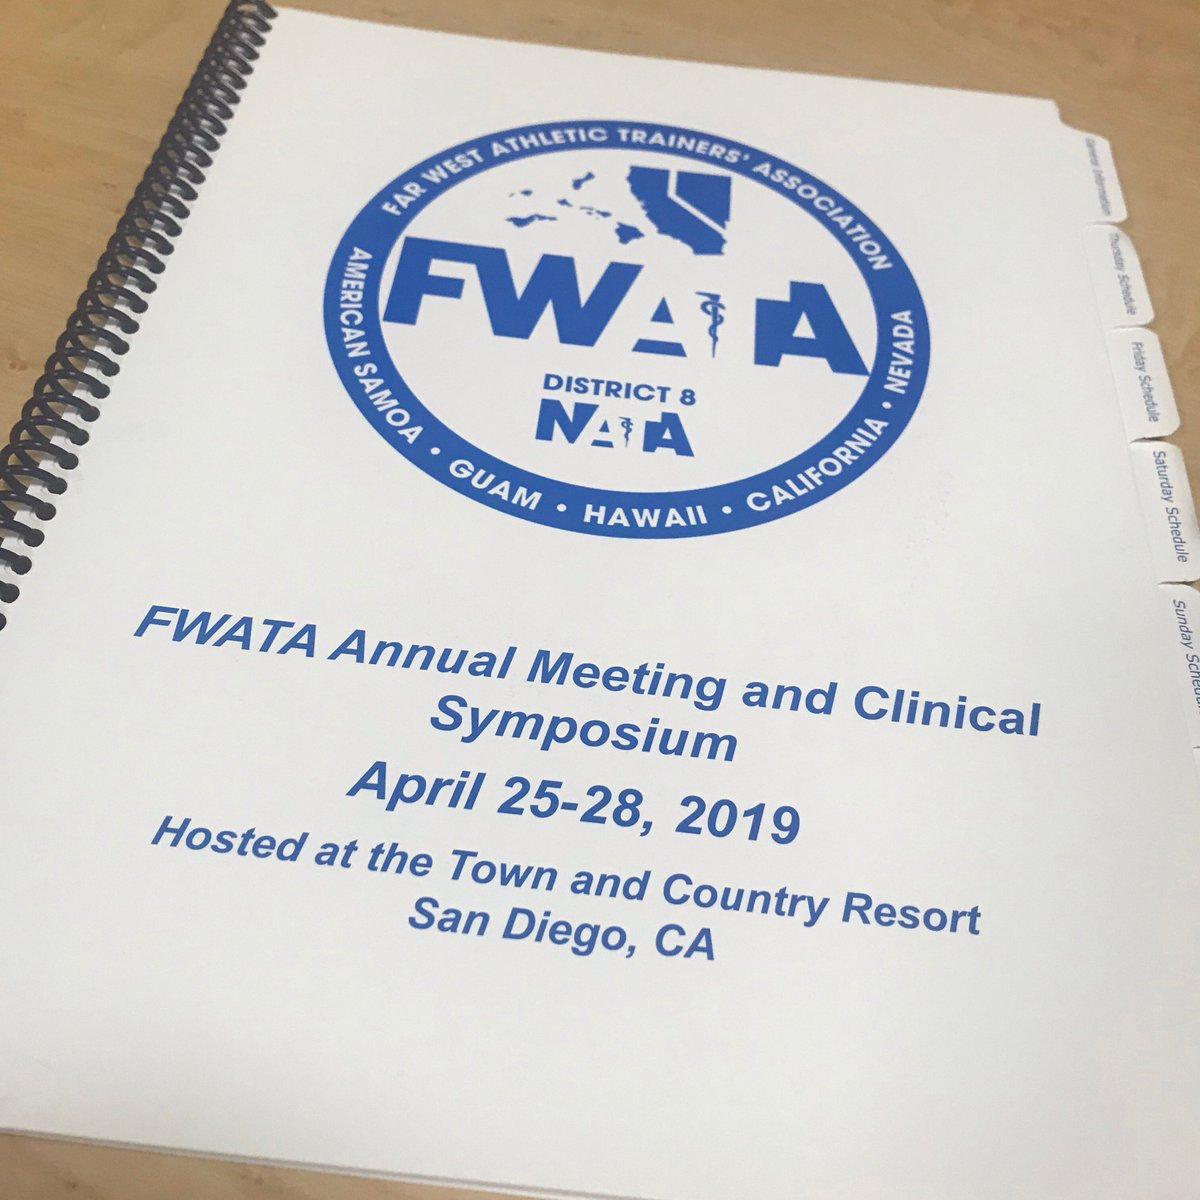 Associate Director, @Sera115 and APGAT, Sanam Rezazadeh presented to both the general session and student sessions this past weekend at FWATA's 2019 Annual Meeting and Clinical Symposium in San Diego.  #GoCard #2and7 #dontfold #FWATA #District8 #CATA #CEU #worklove <br>http://pic.twitter.com/u2lINV3JEH